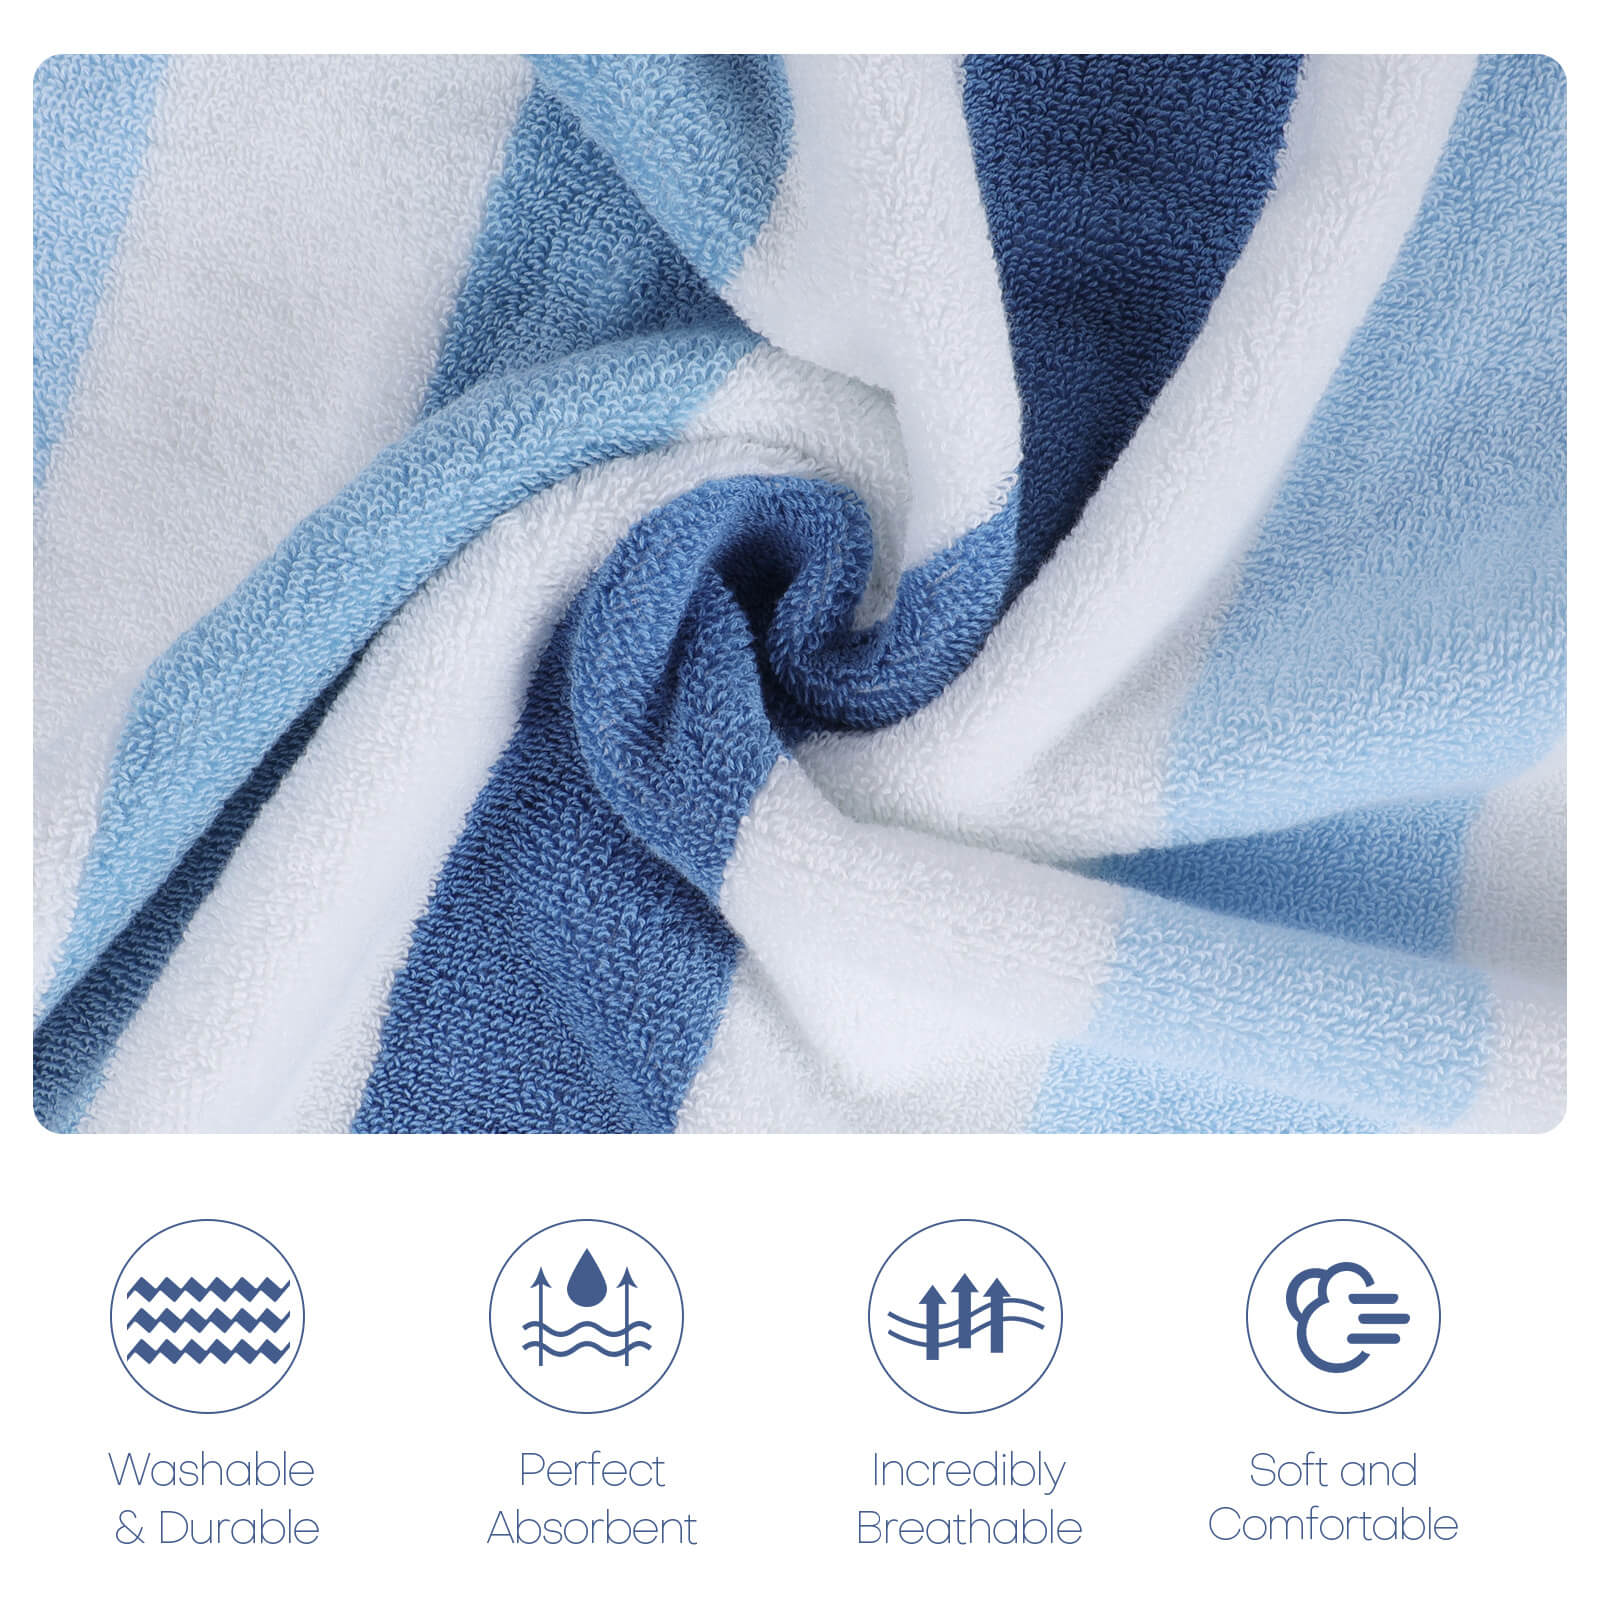 Functions of the Egyptian cotton bath towel set